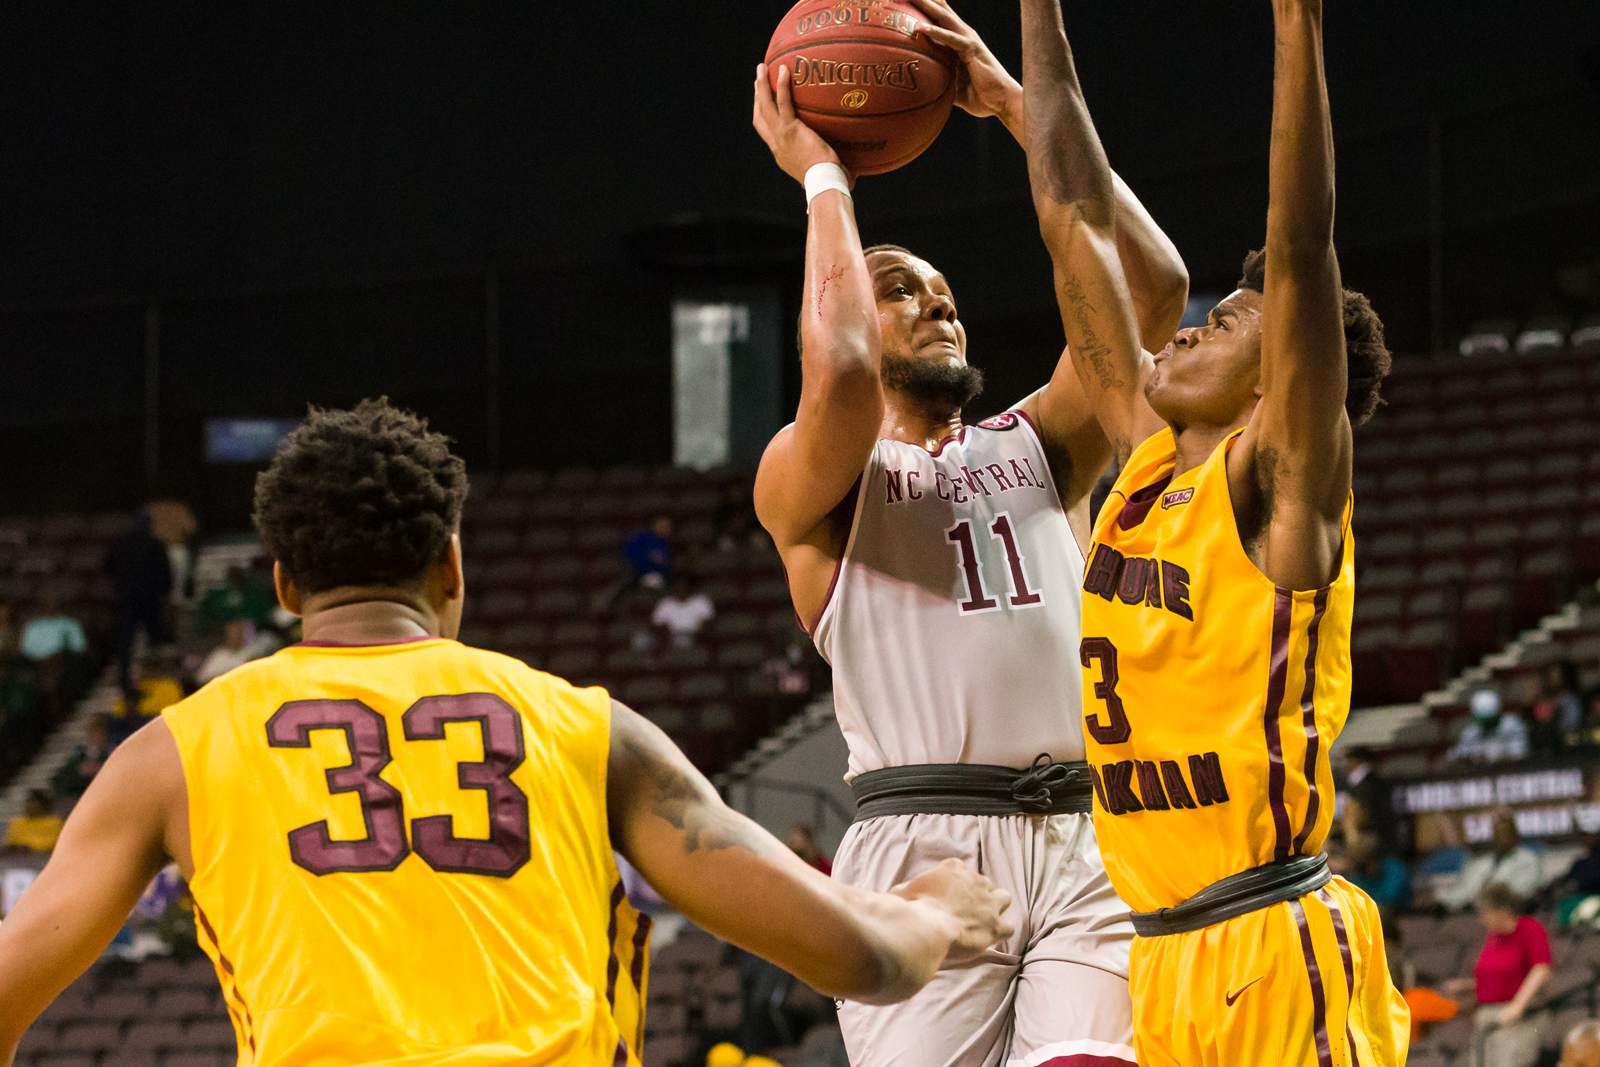 North Carolina Central Eagles guard Patrick Cole (11) goes up for a shot against Bethune-Cookman Wildcats guard Brandon Tabb (3) during the 2017 MEAC Tournament held at the Scope Arena in Norfolk, VA. North Carolina Central defeated Bethune-Cookman 95-60.